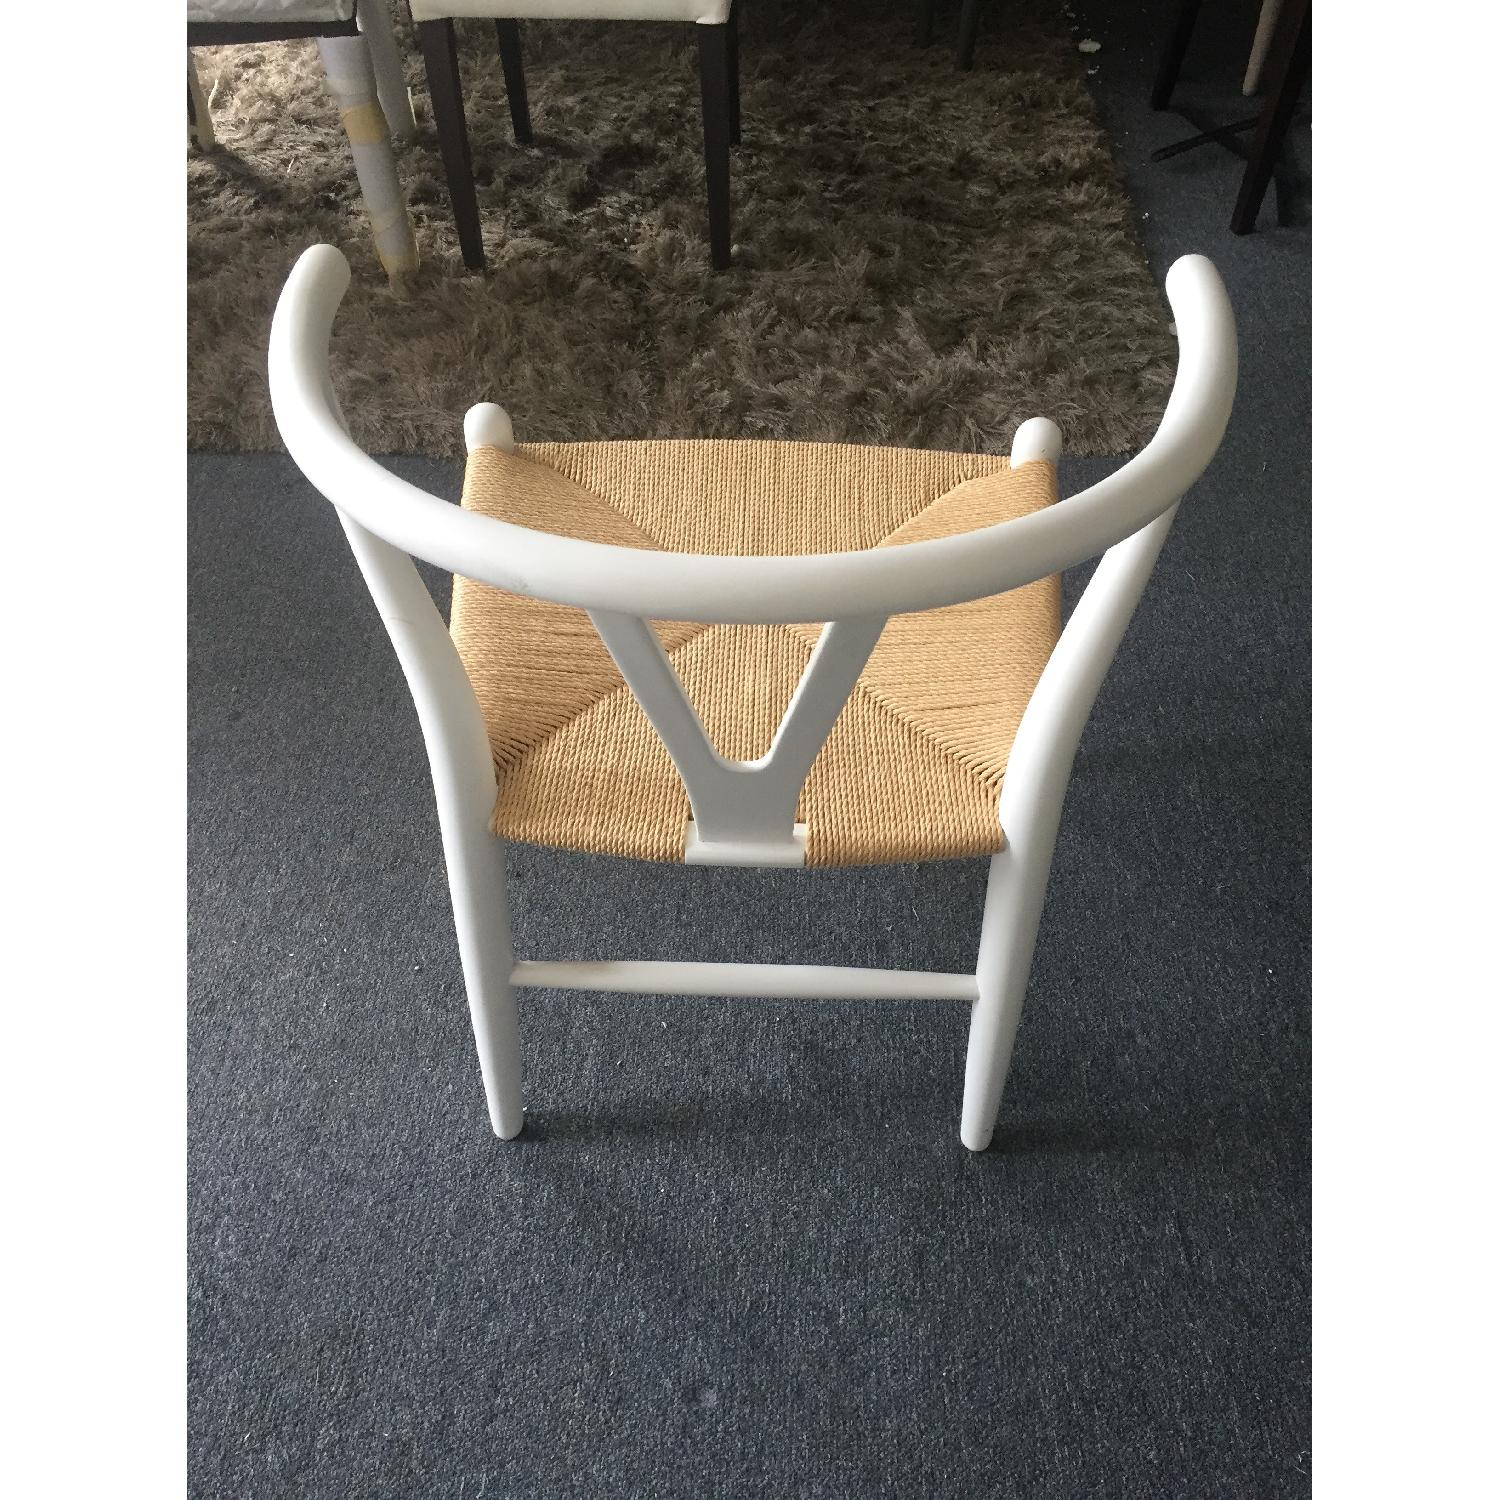 Lazzoni White Dining/Outdoor Chairs - image-6